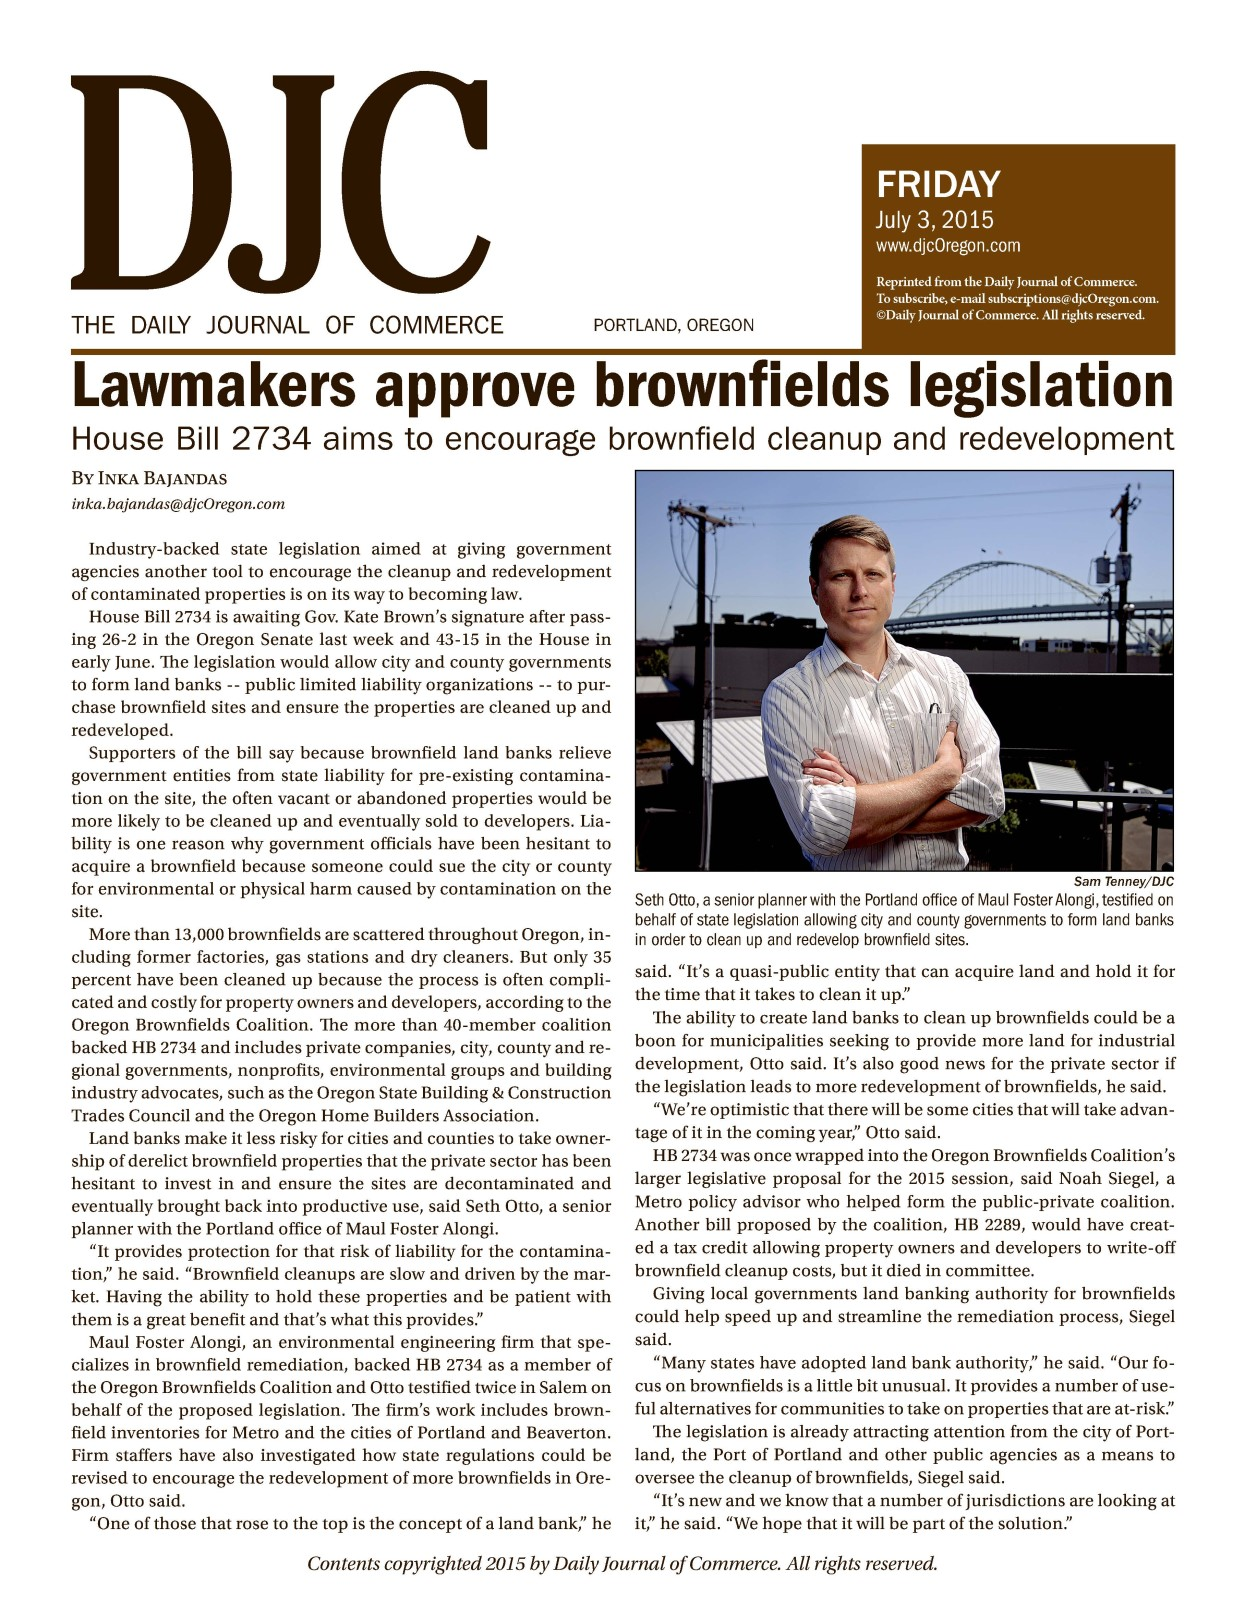 2015.07.03 OR DJC Seth & Brownfield Legislation